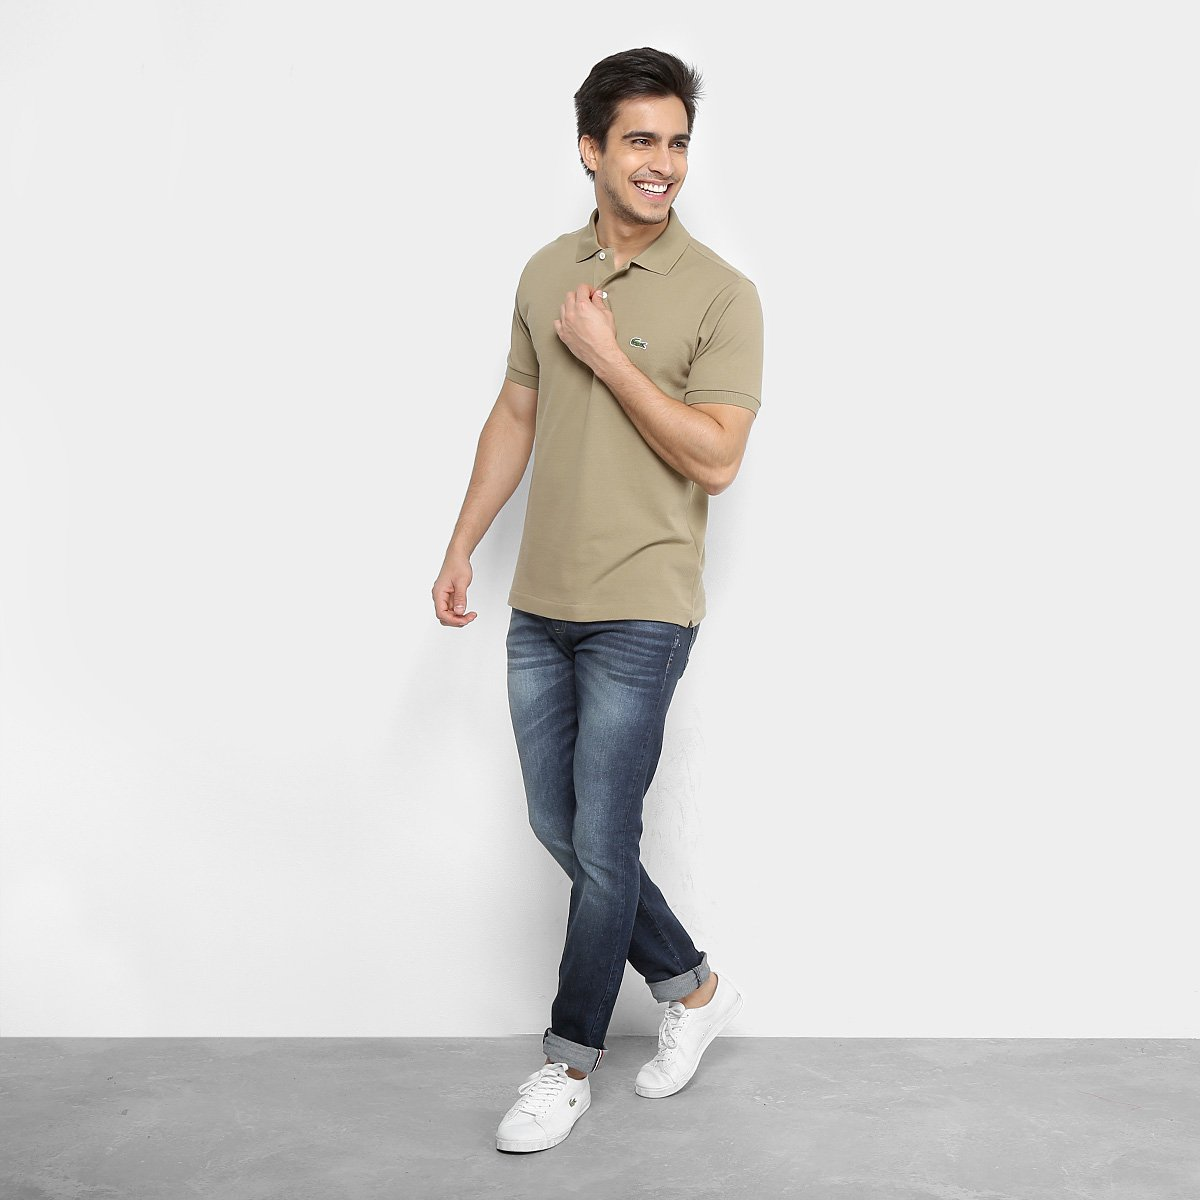 5b87a6aafb6f1 Camisa Polo Lacoste Piquet Original Fit Masculina - Verde escuro ...